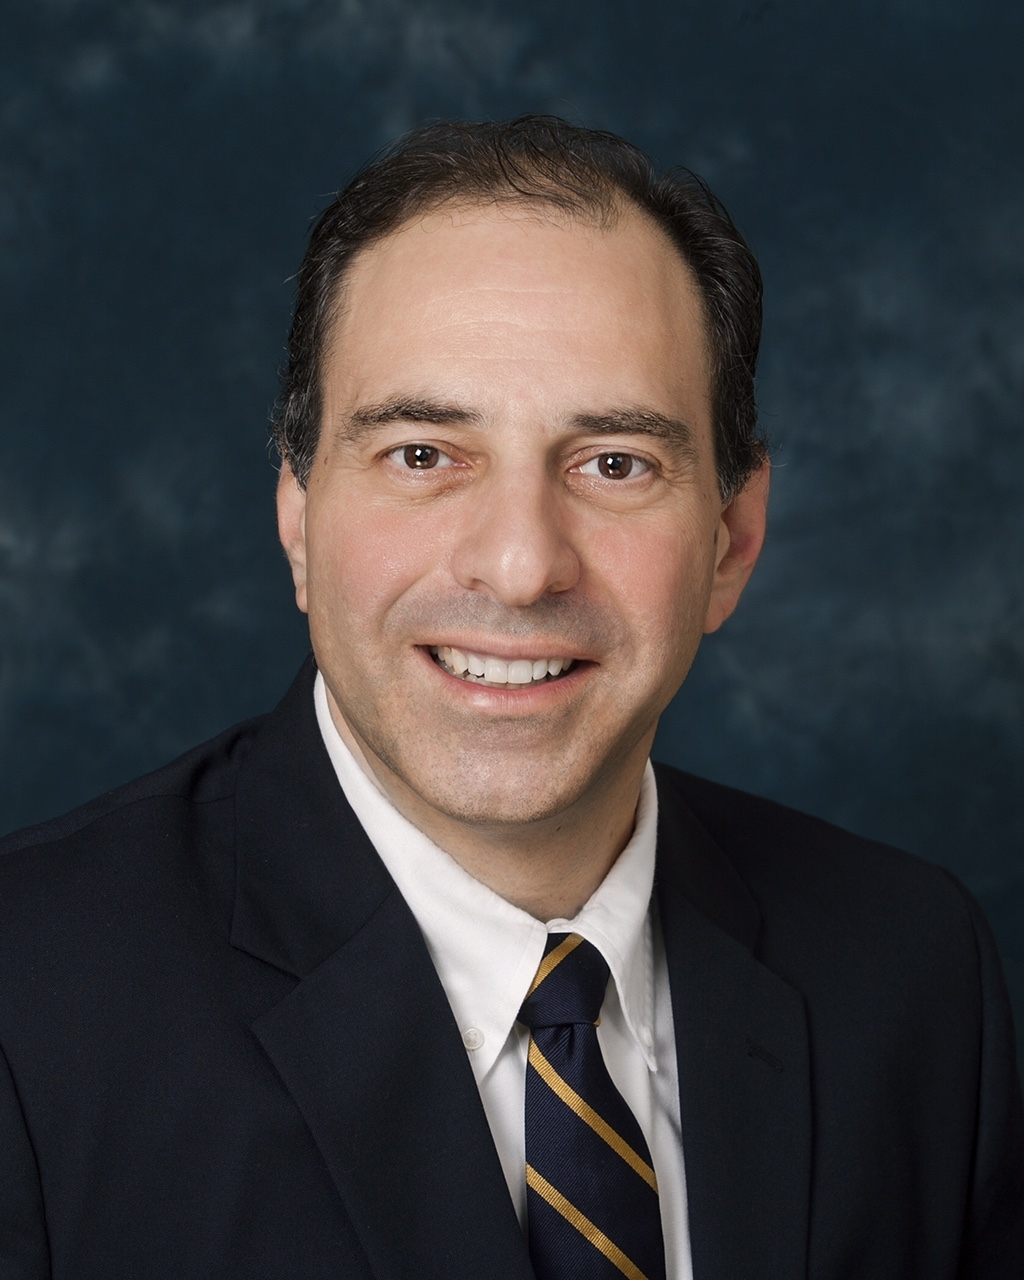 Profile photo for Anthony J. Annunziato, Ed.D.